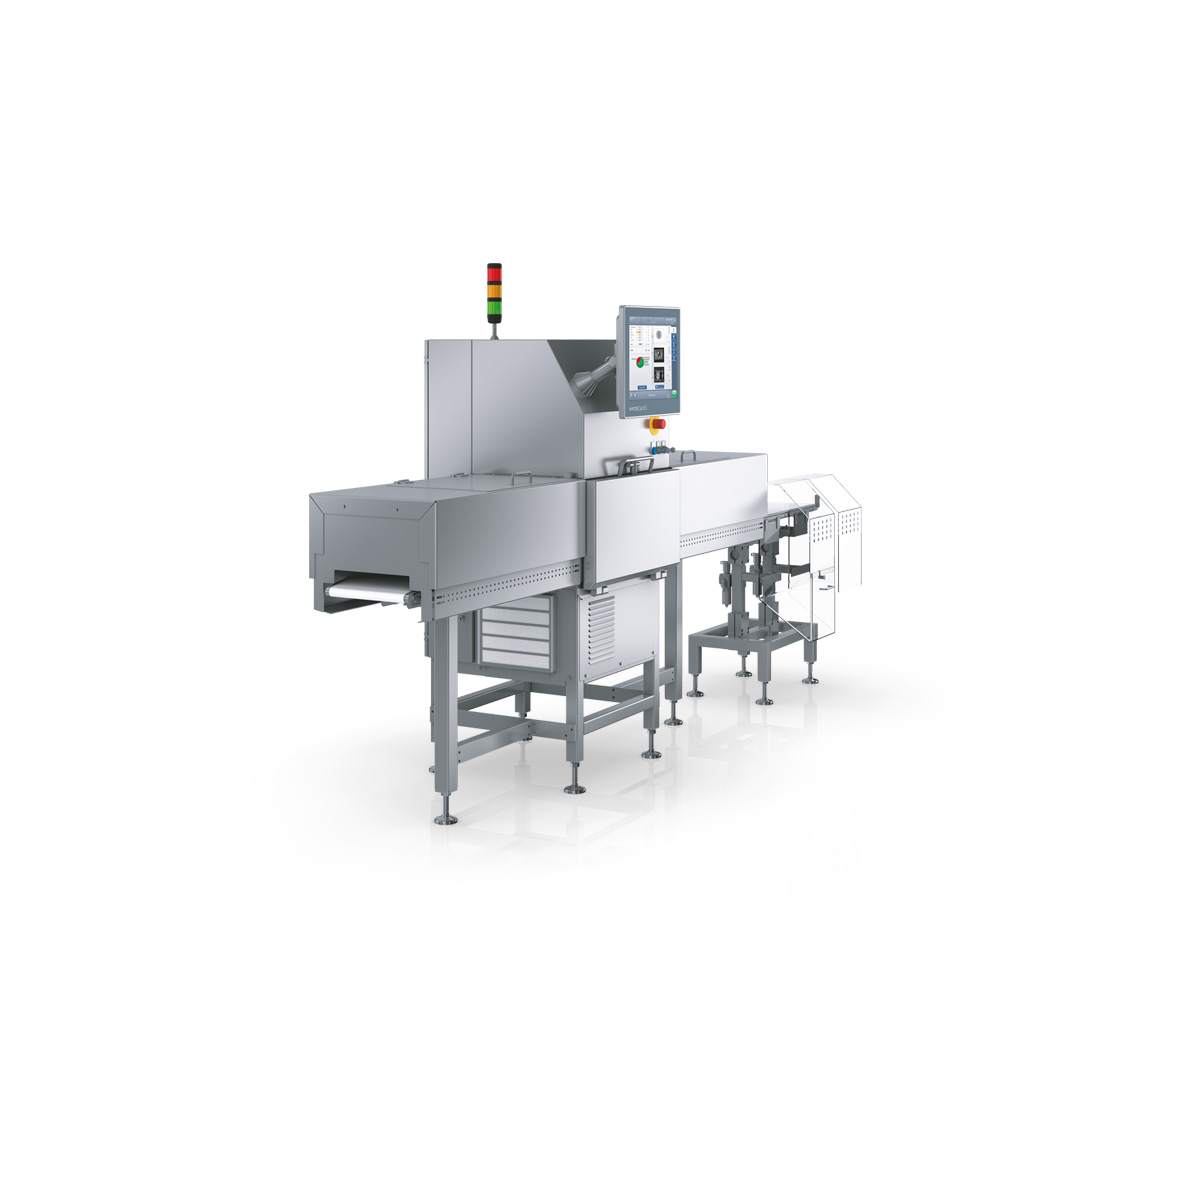 X-ray inspection and vision inspection system in one unit: SC-V left view v2